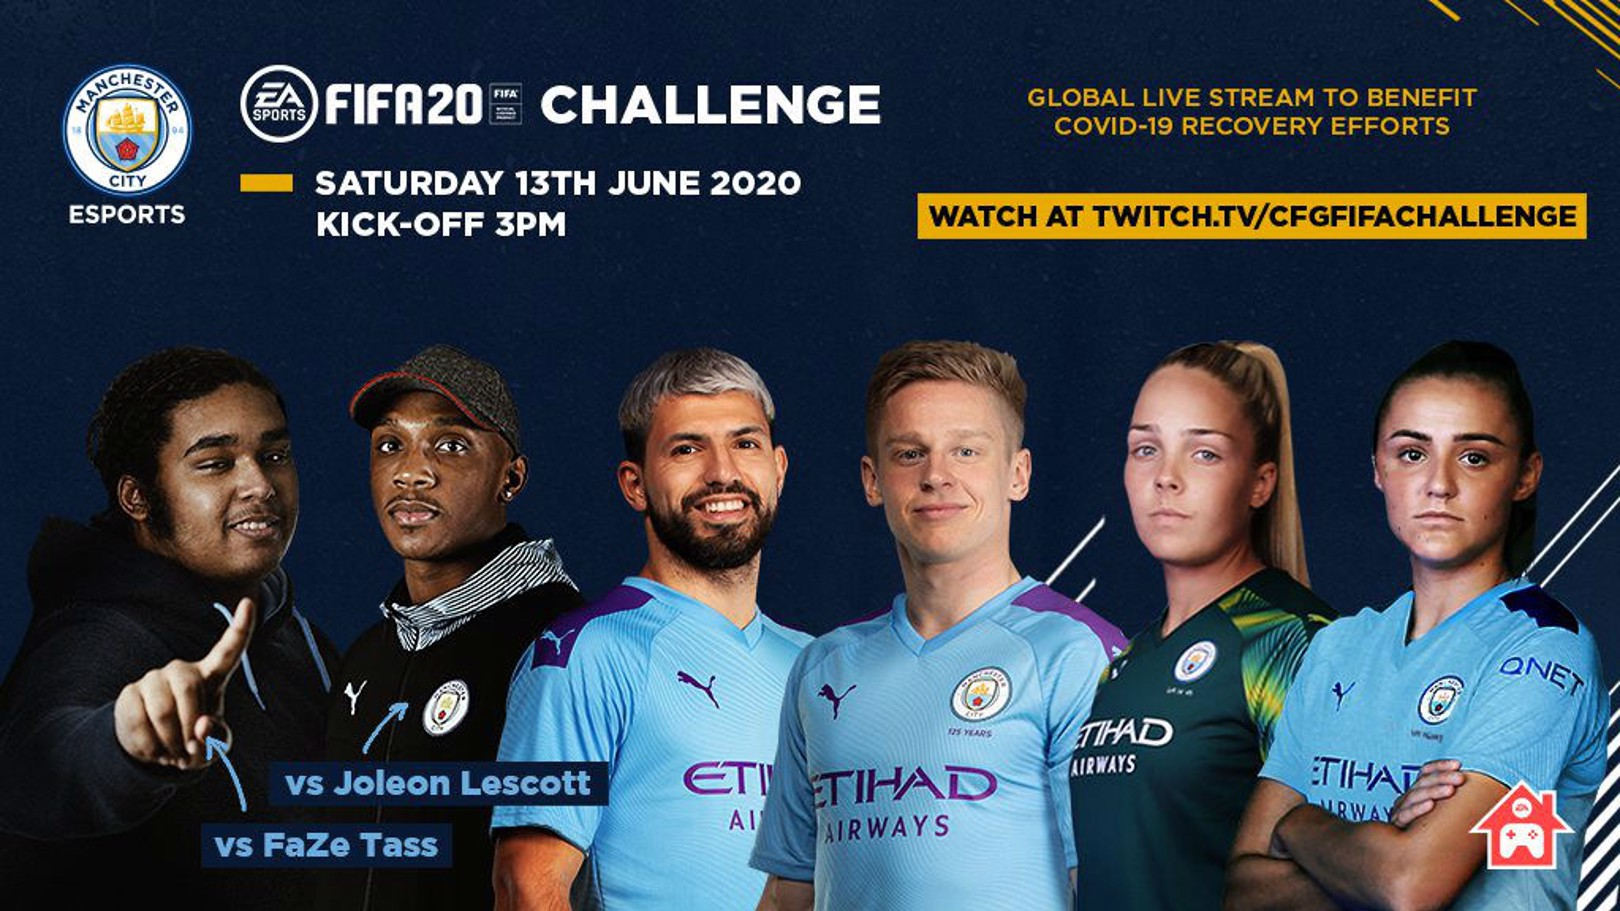 City players to take part in CFG FIFA challenge